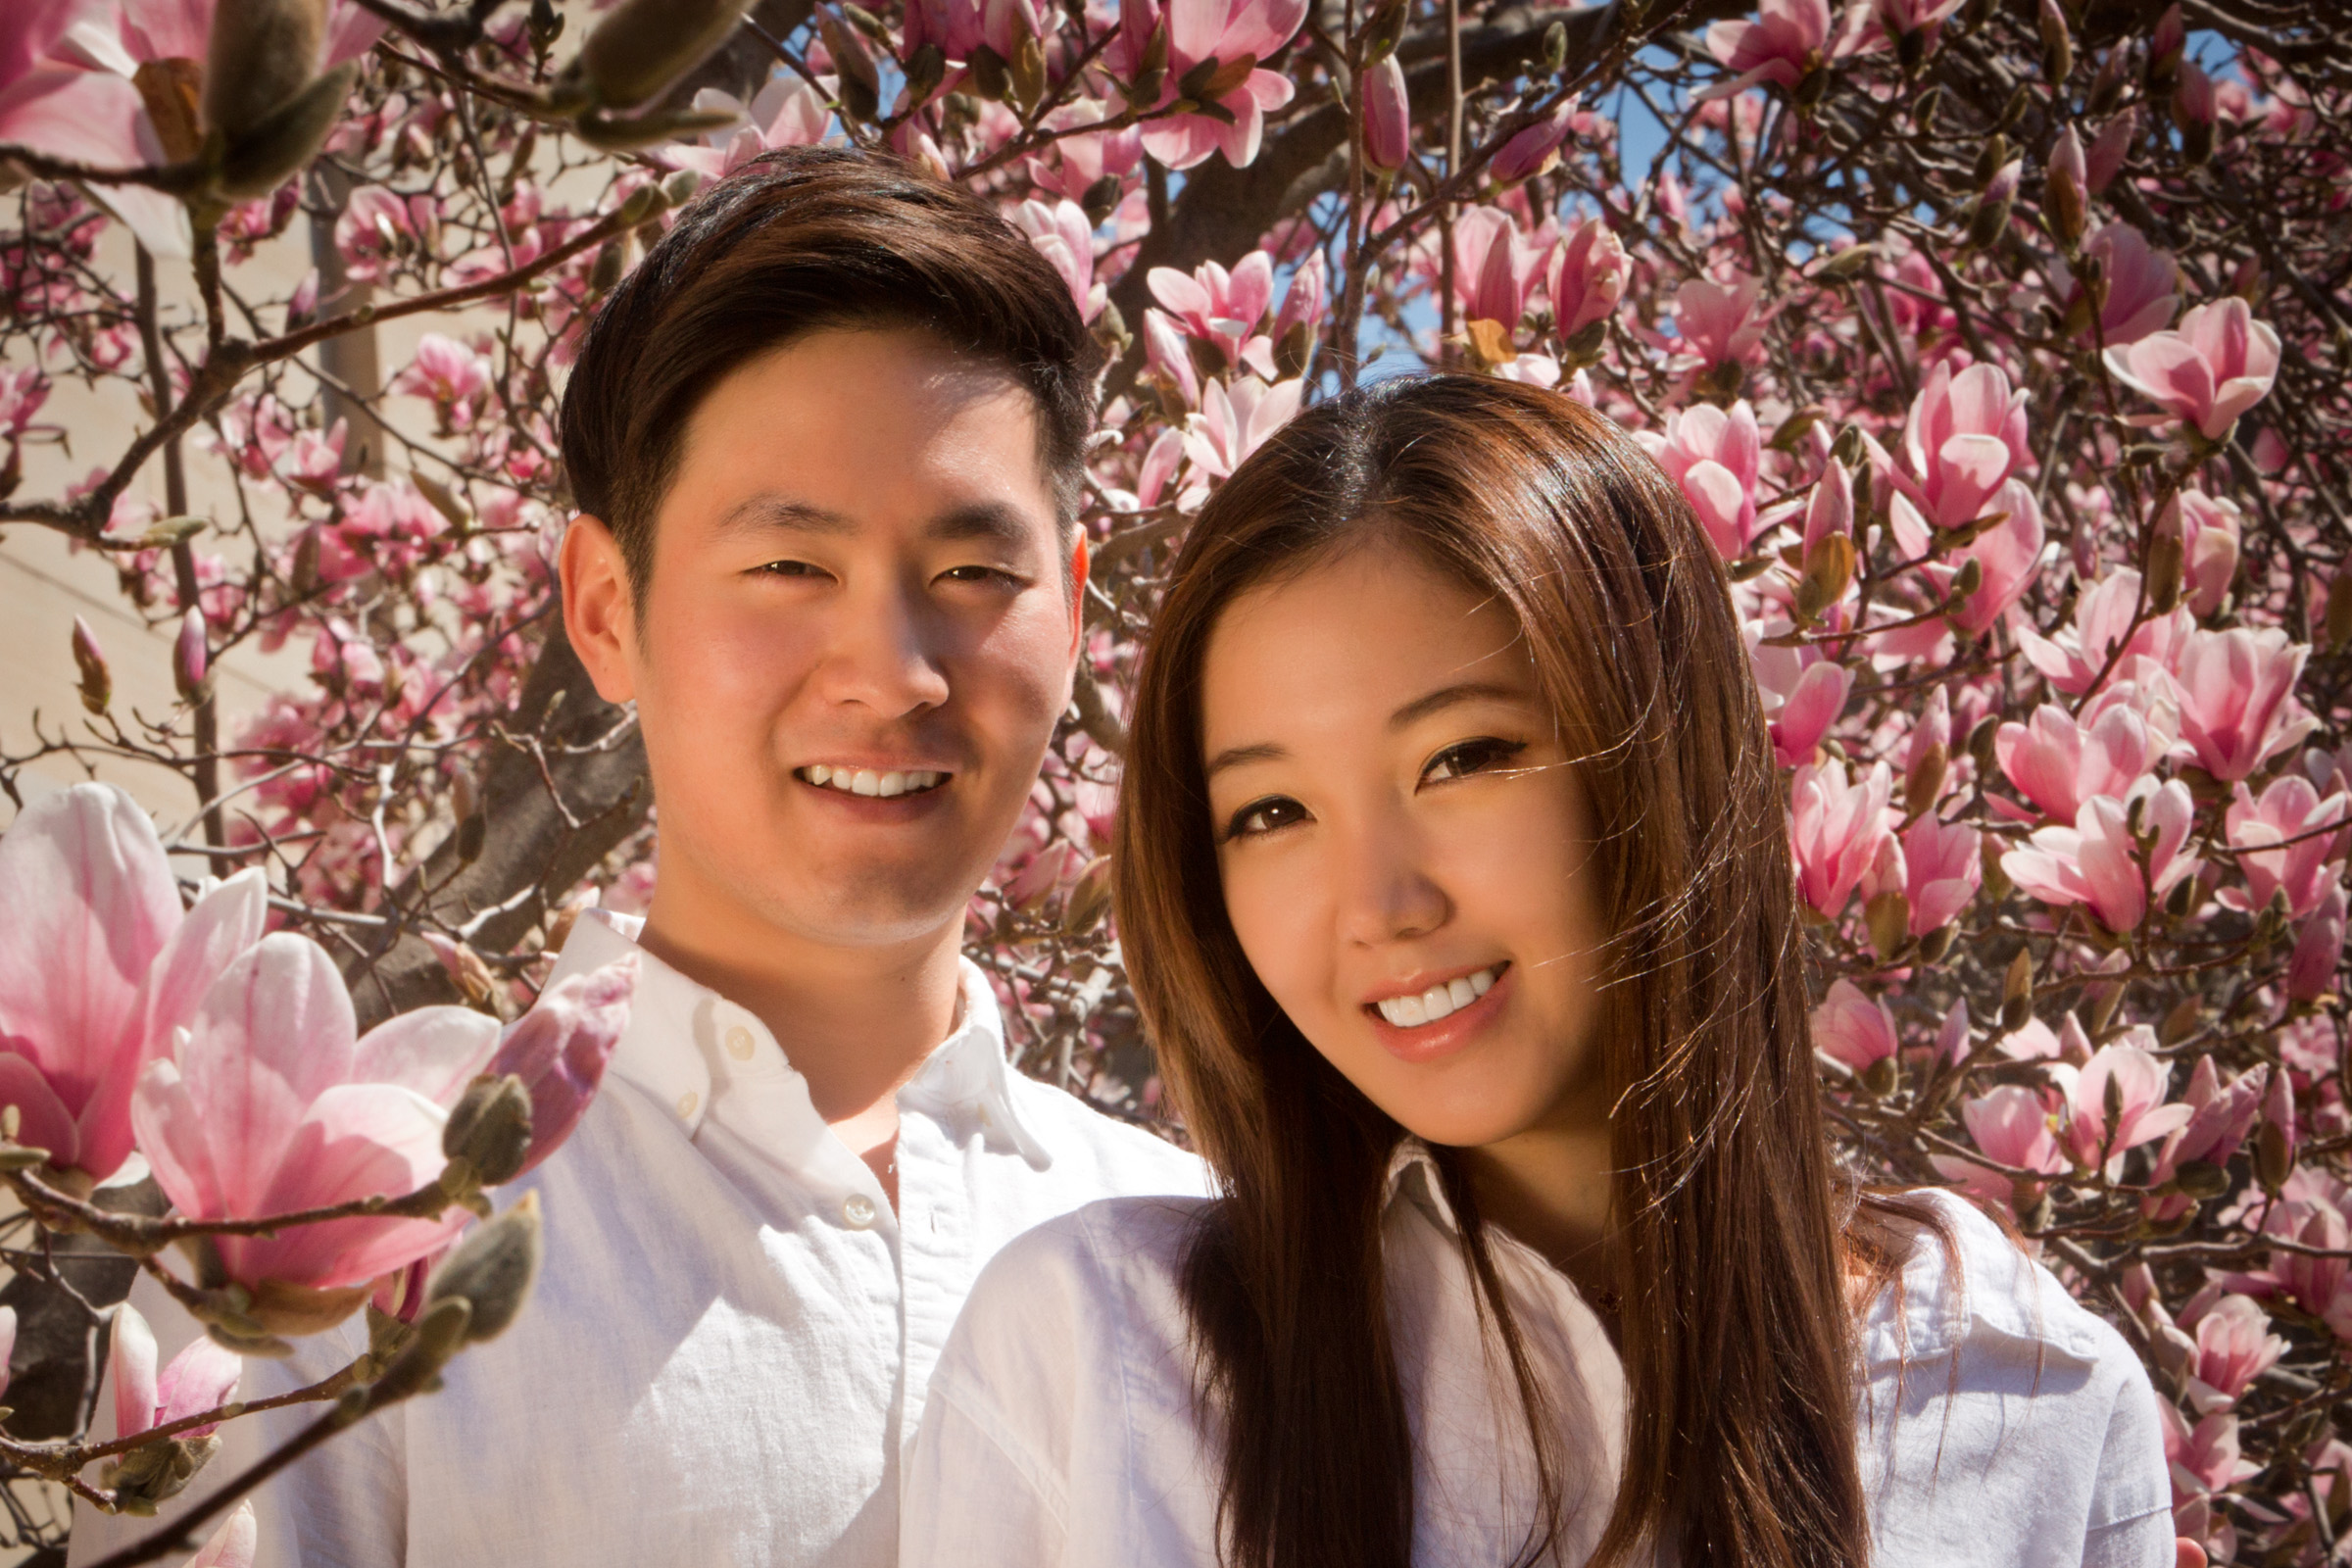 Heewook Lee And Haeseong Kim Wedding Engagement University Of Michigan Ann Arbor Portraits